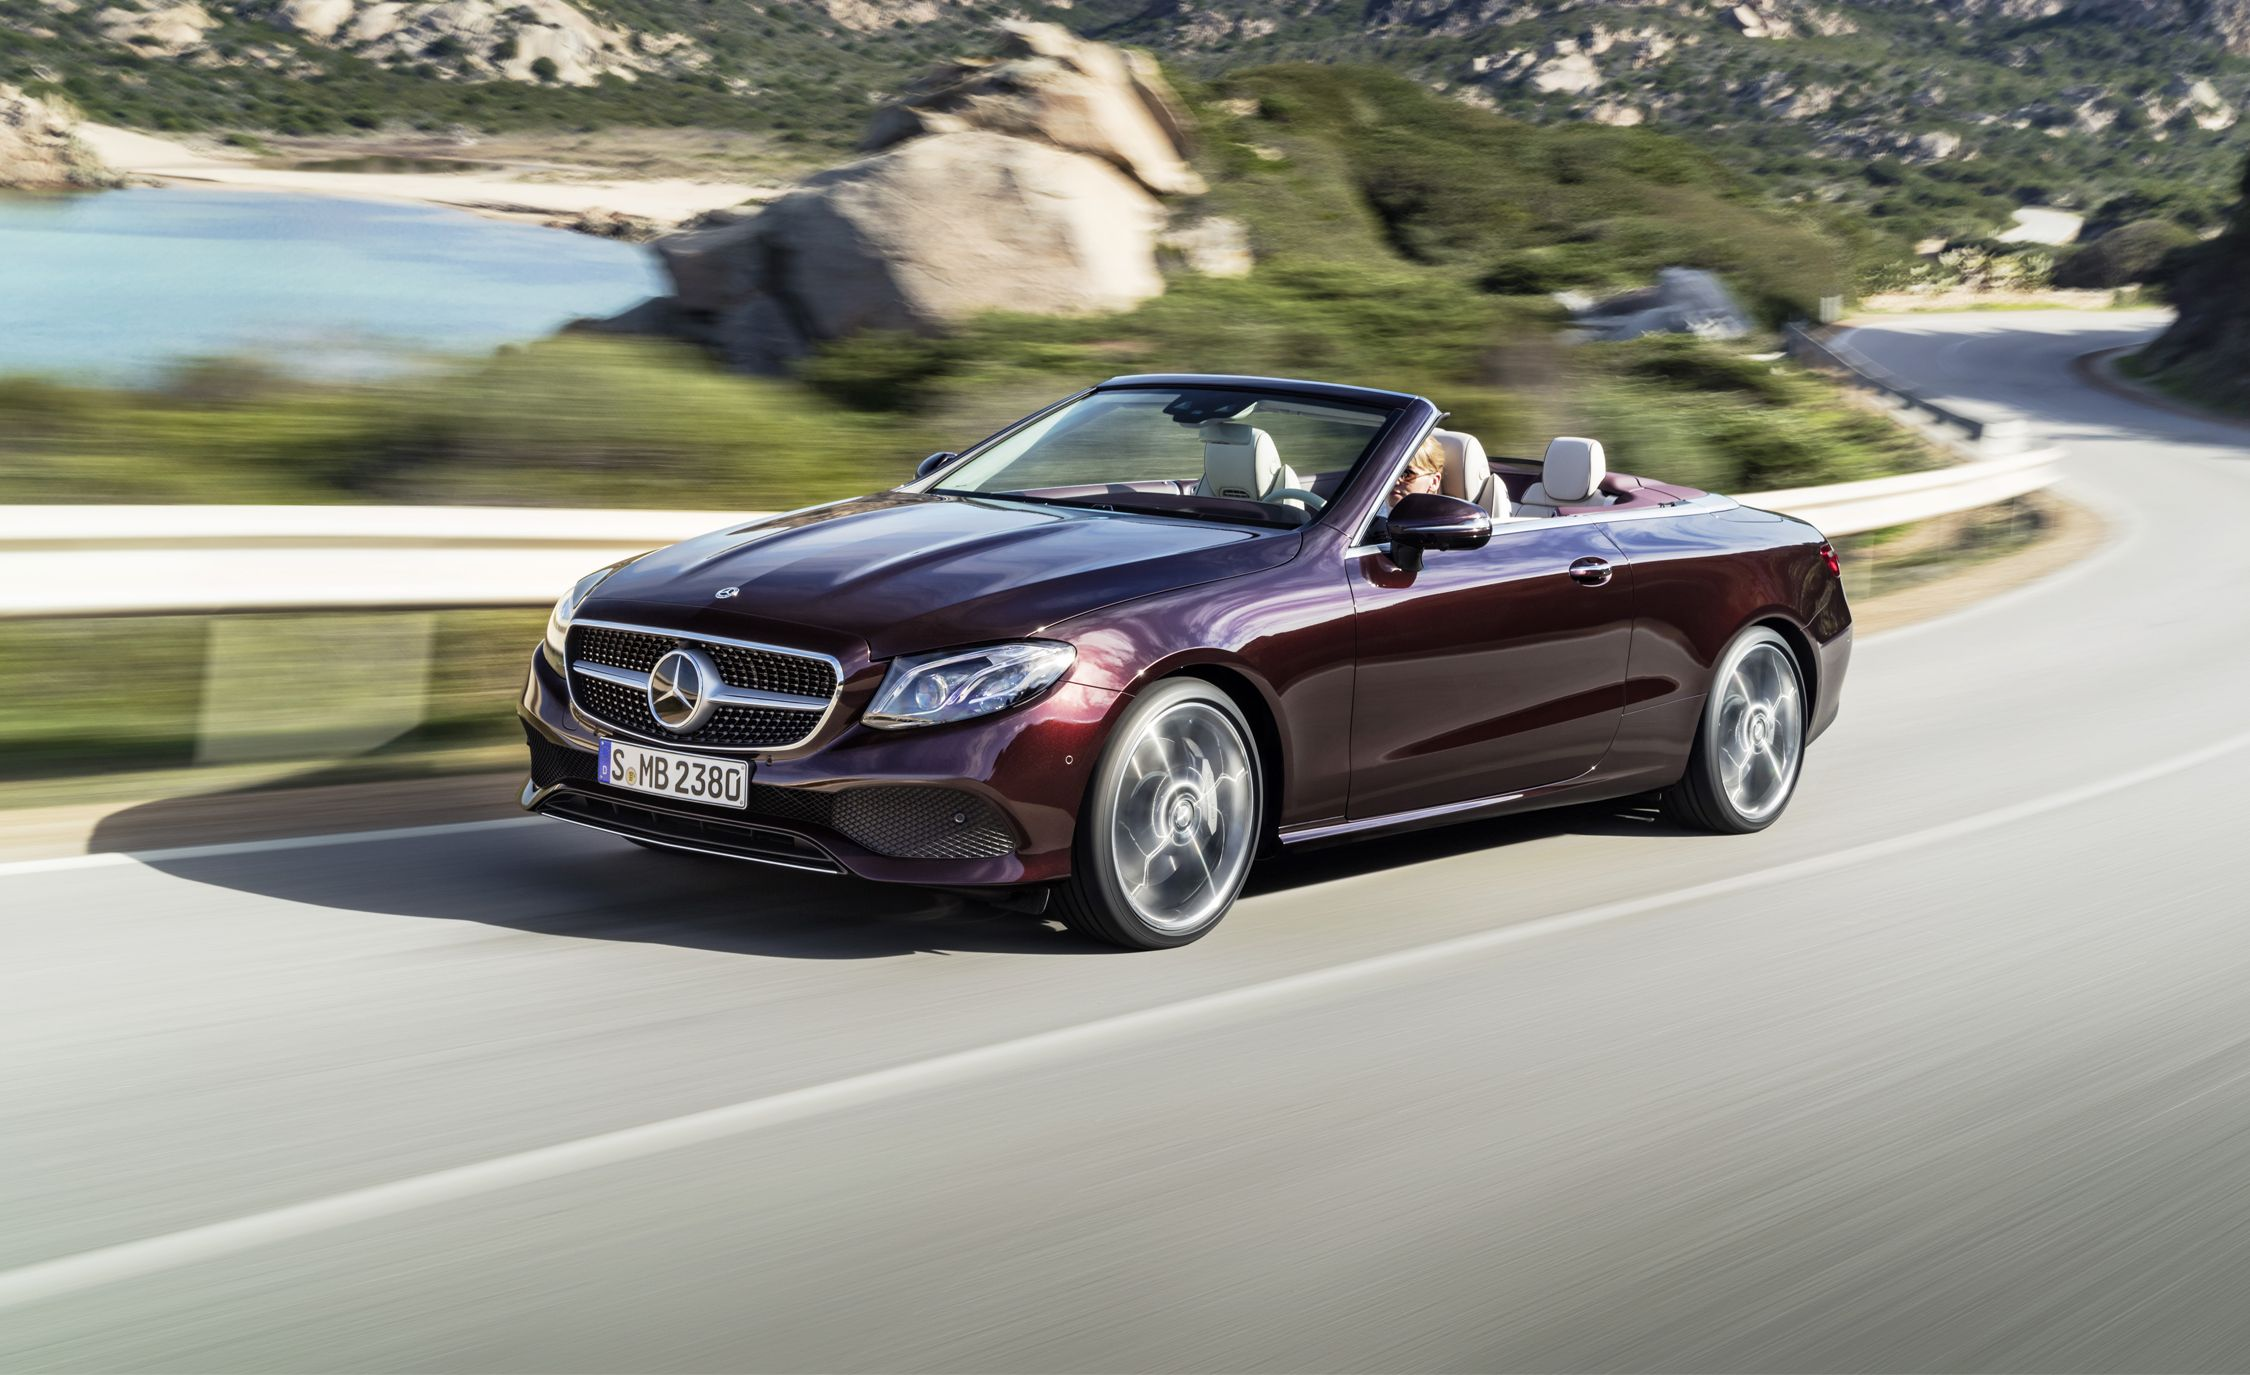 2017 Mercedes Benz C Class Cabriolet First Drive Review Car And